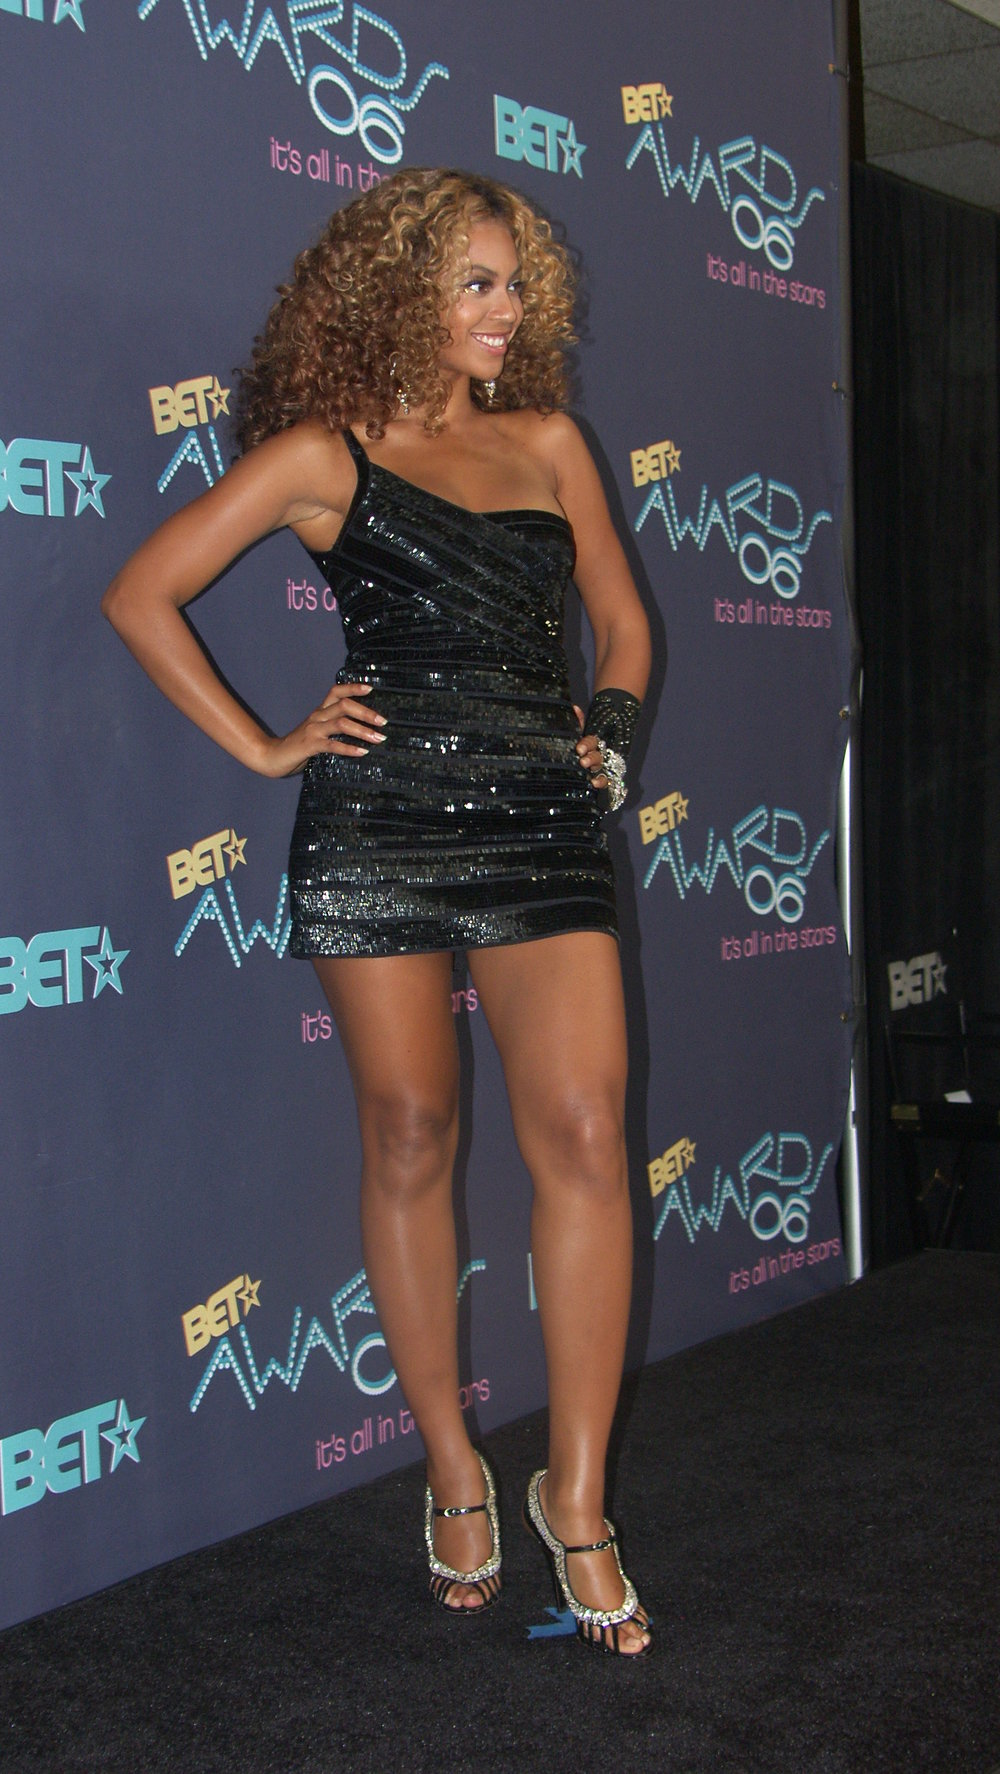 6th Annual BET Awards 2006 264.jpg